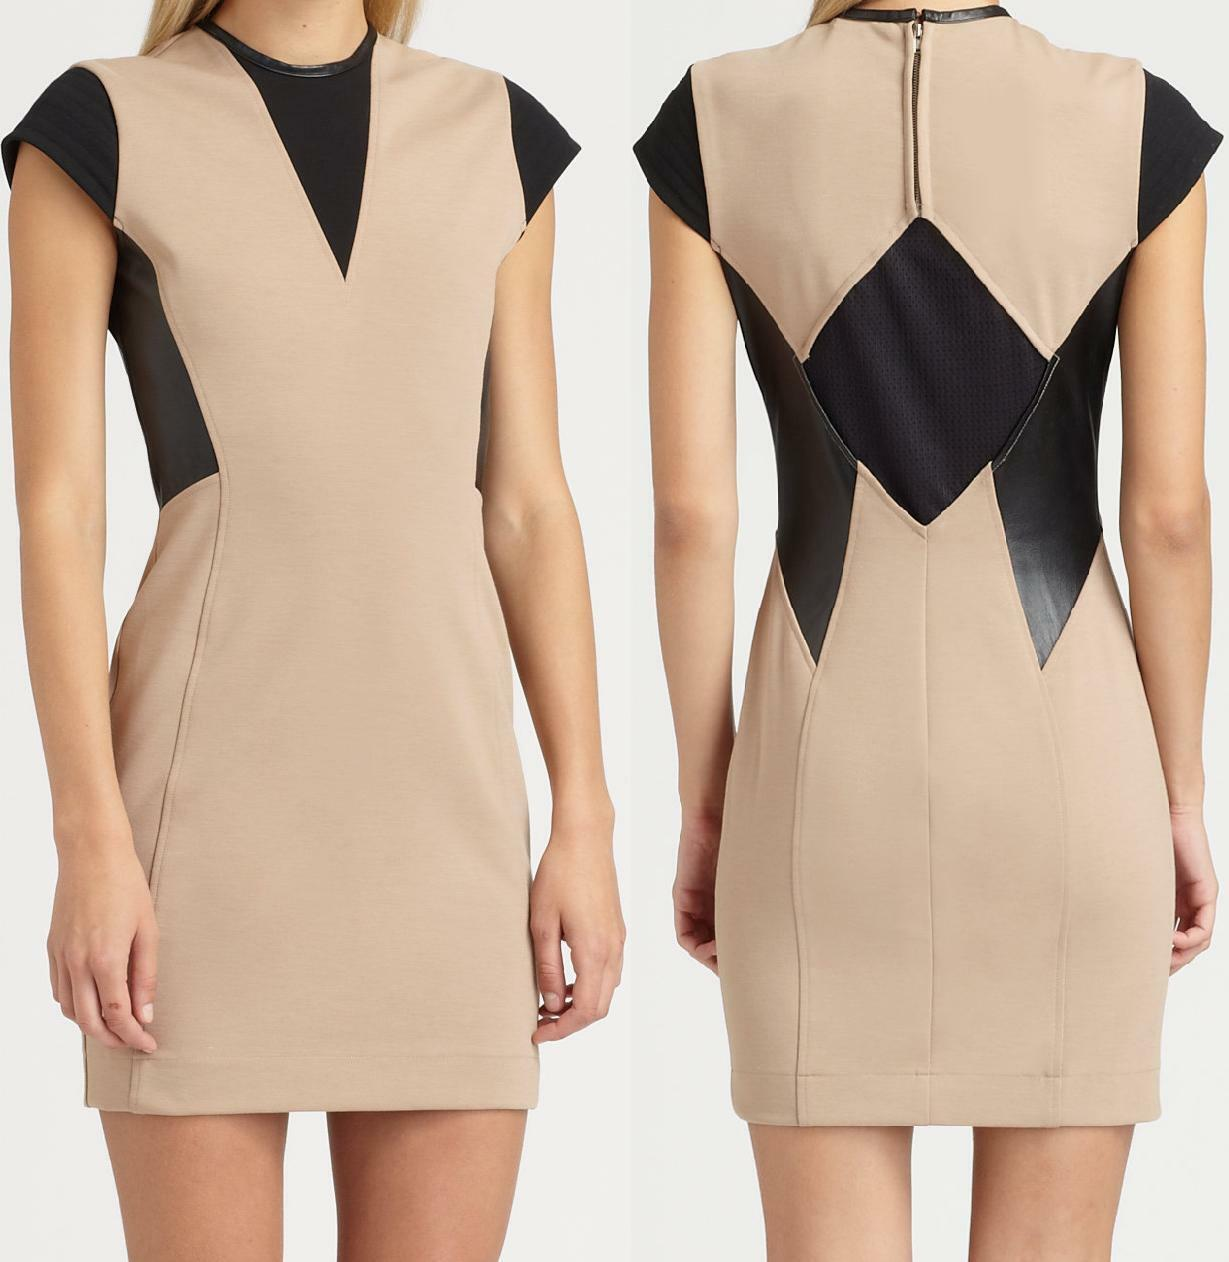 NWT Cut 25 by Yigal Azrouel Leather Trim Ponte Dress Size 4